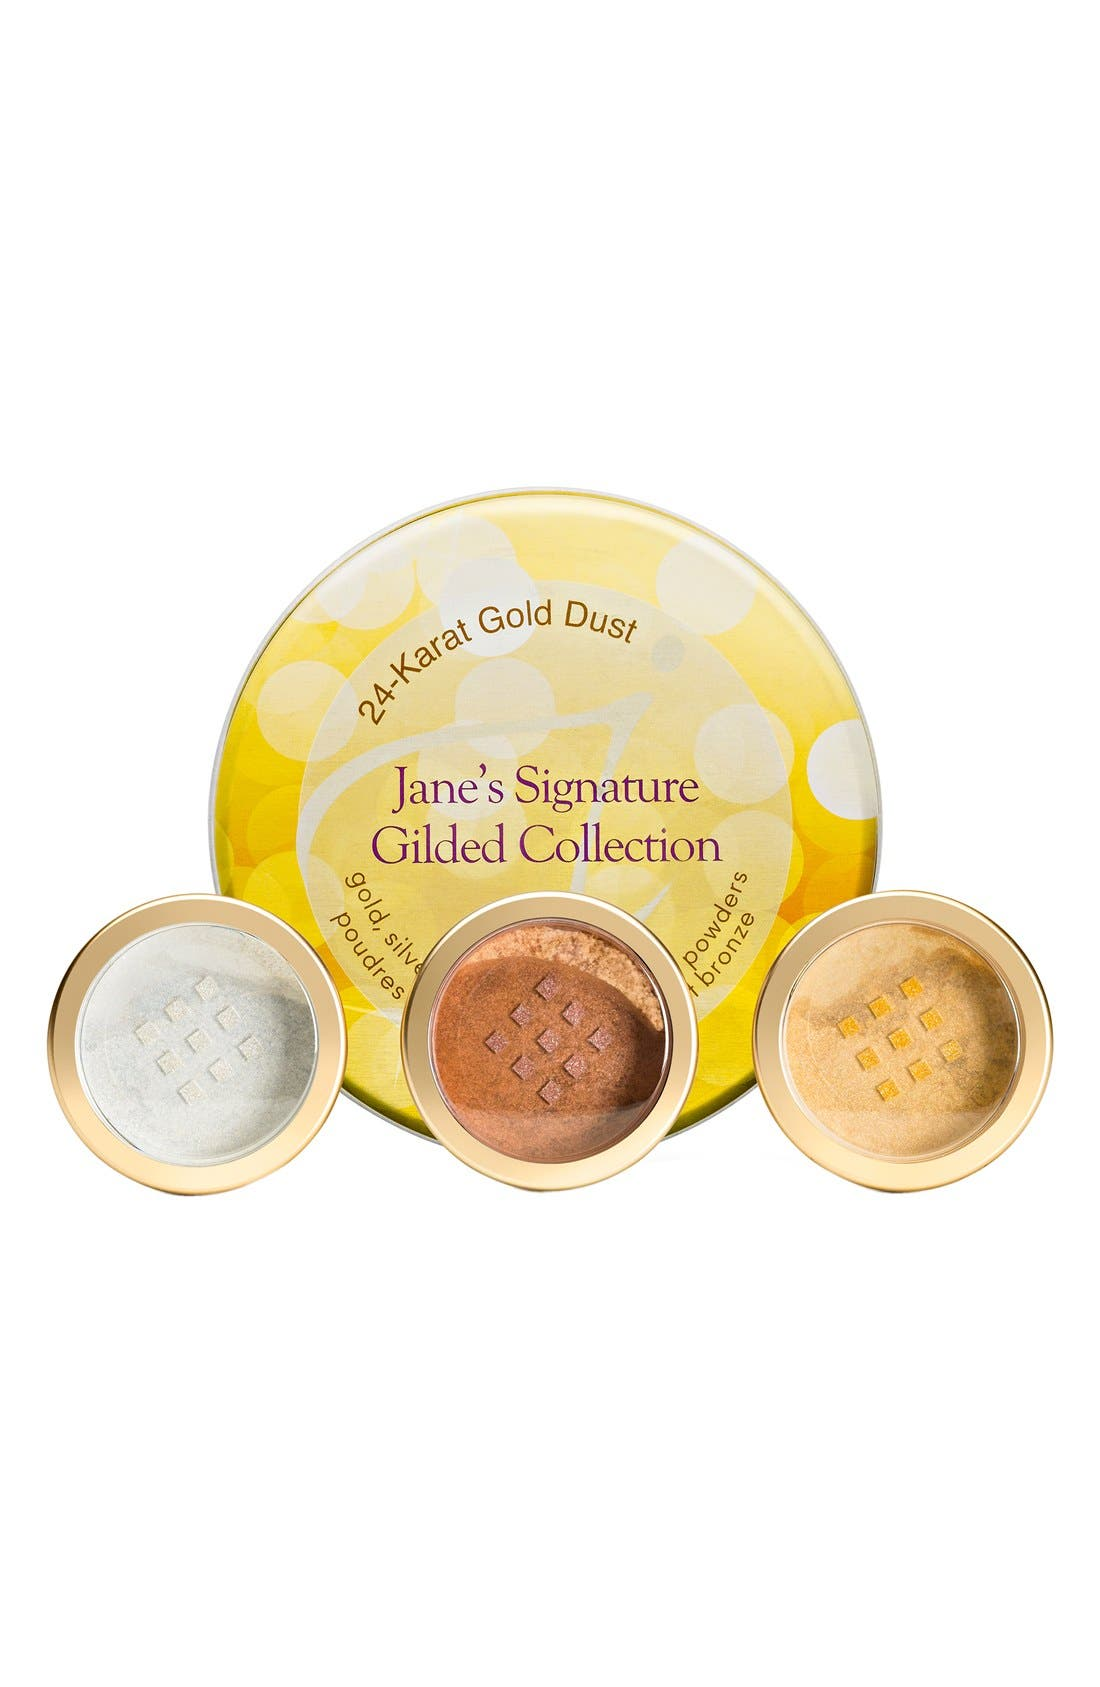 '24-Karat Gold Dust' Signature Gilded Collection,                         Main,                         color, 000